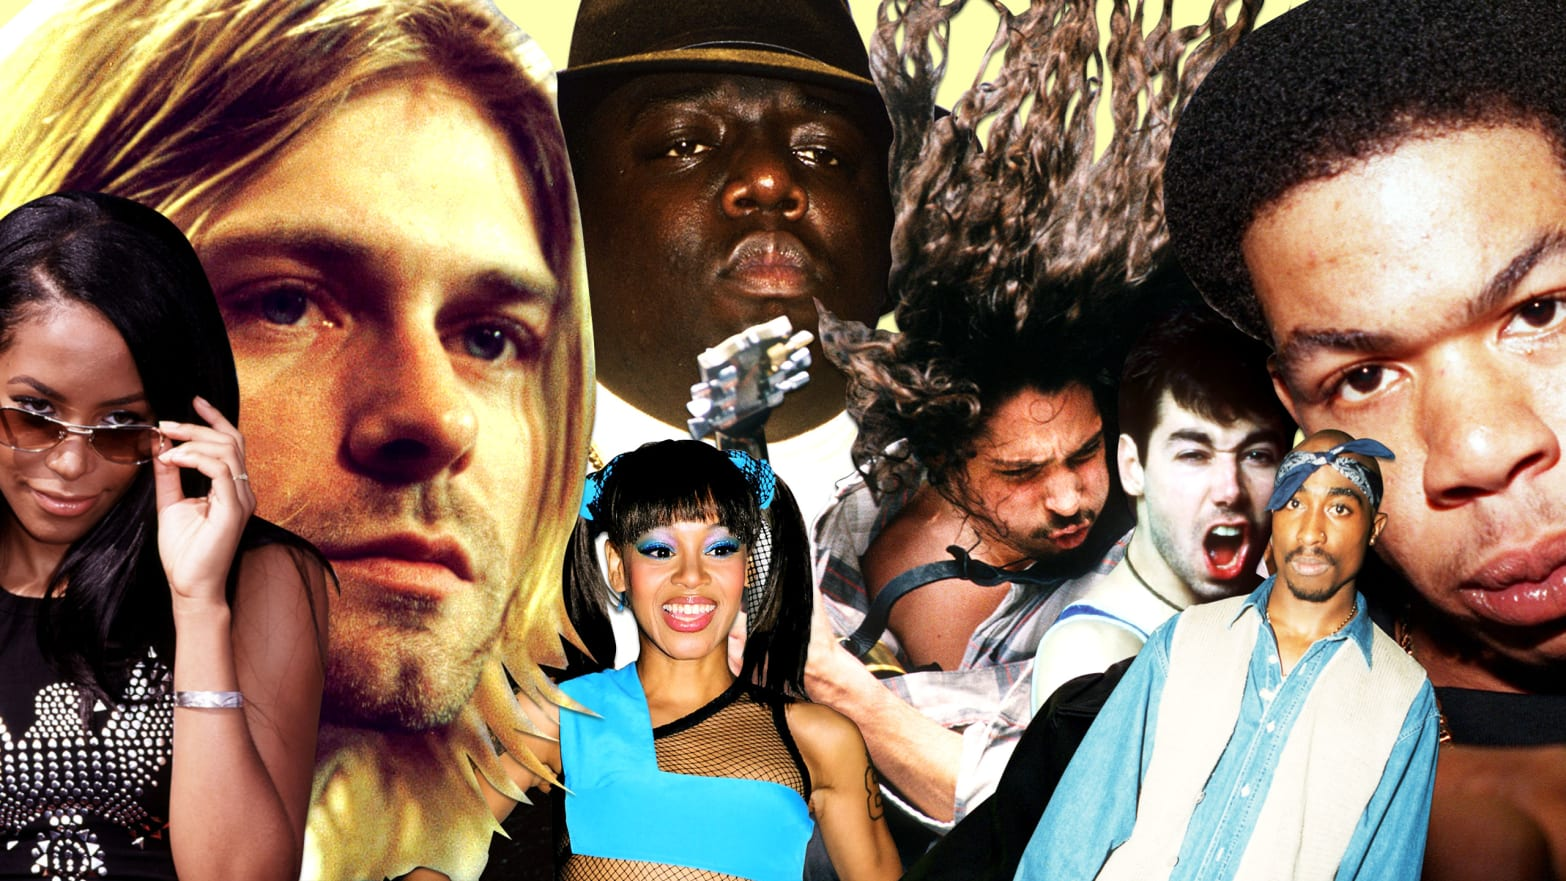 From Craig Mack to Chris Cornell: A Requiem for Mid-'90s Music